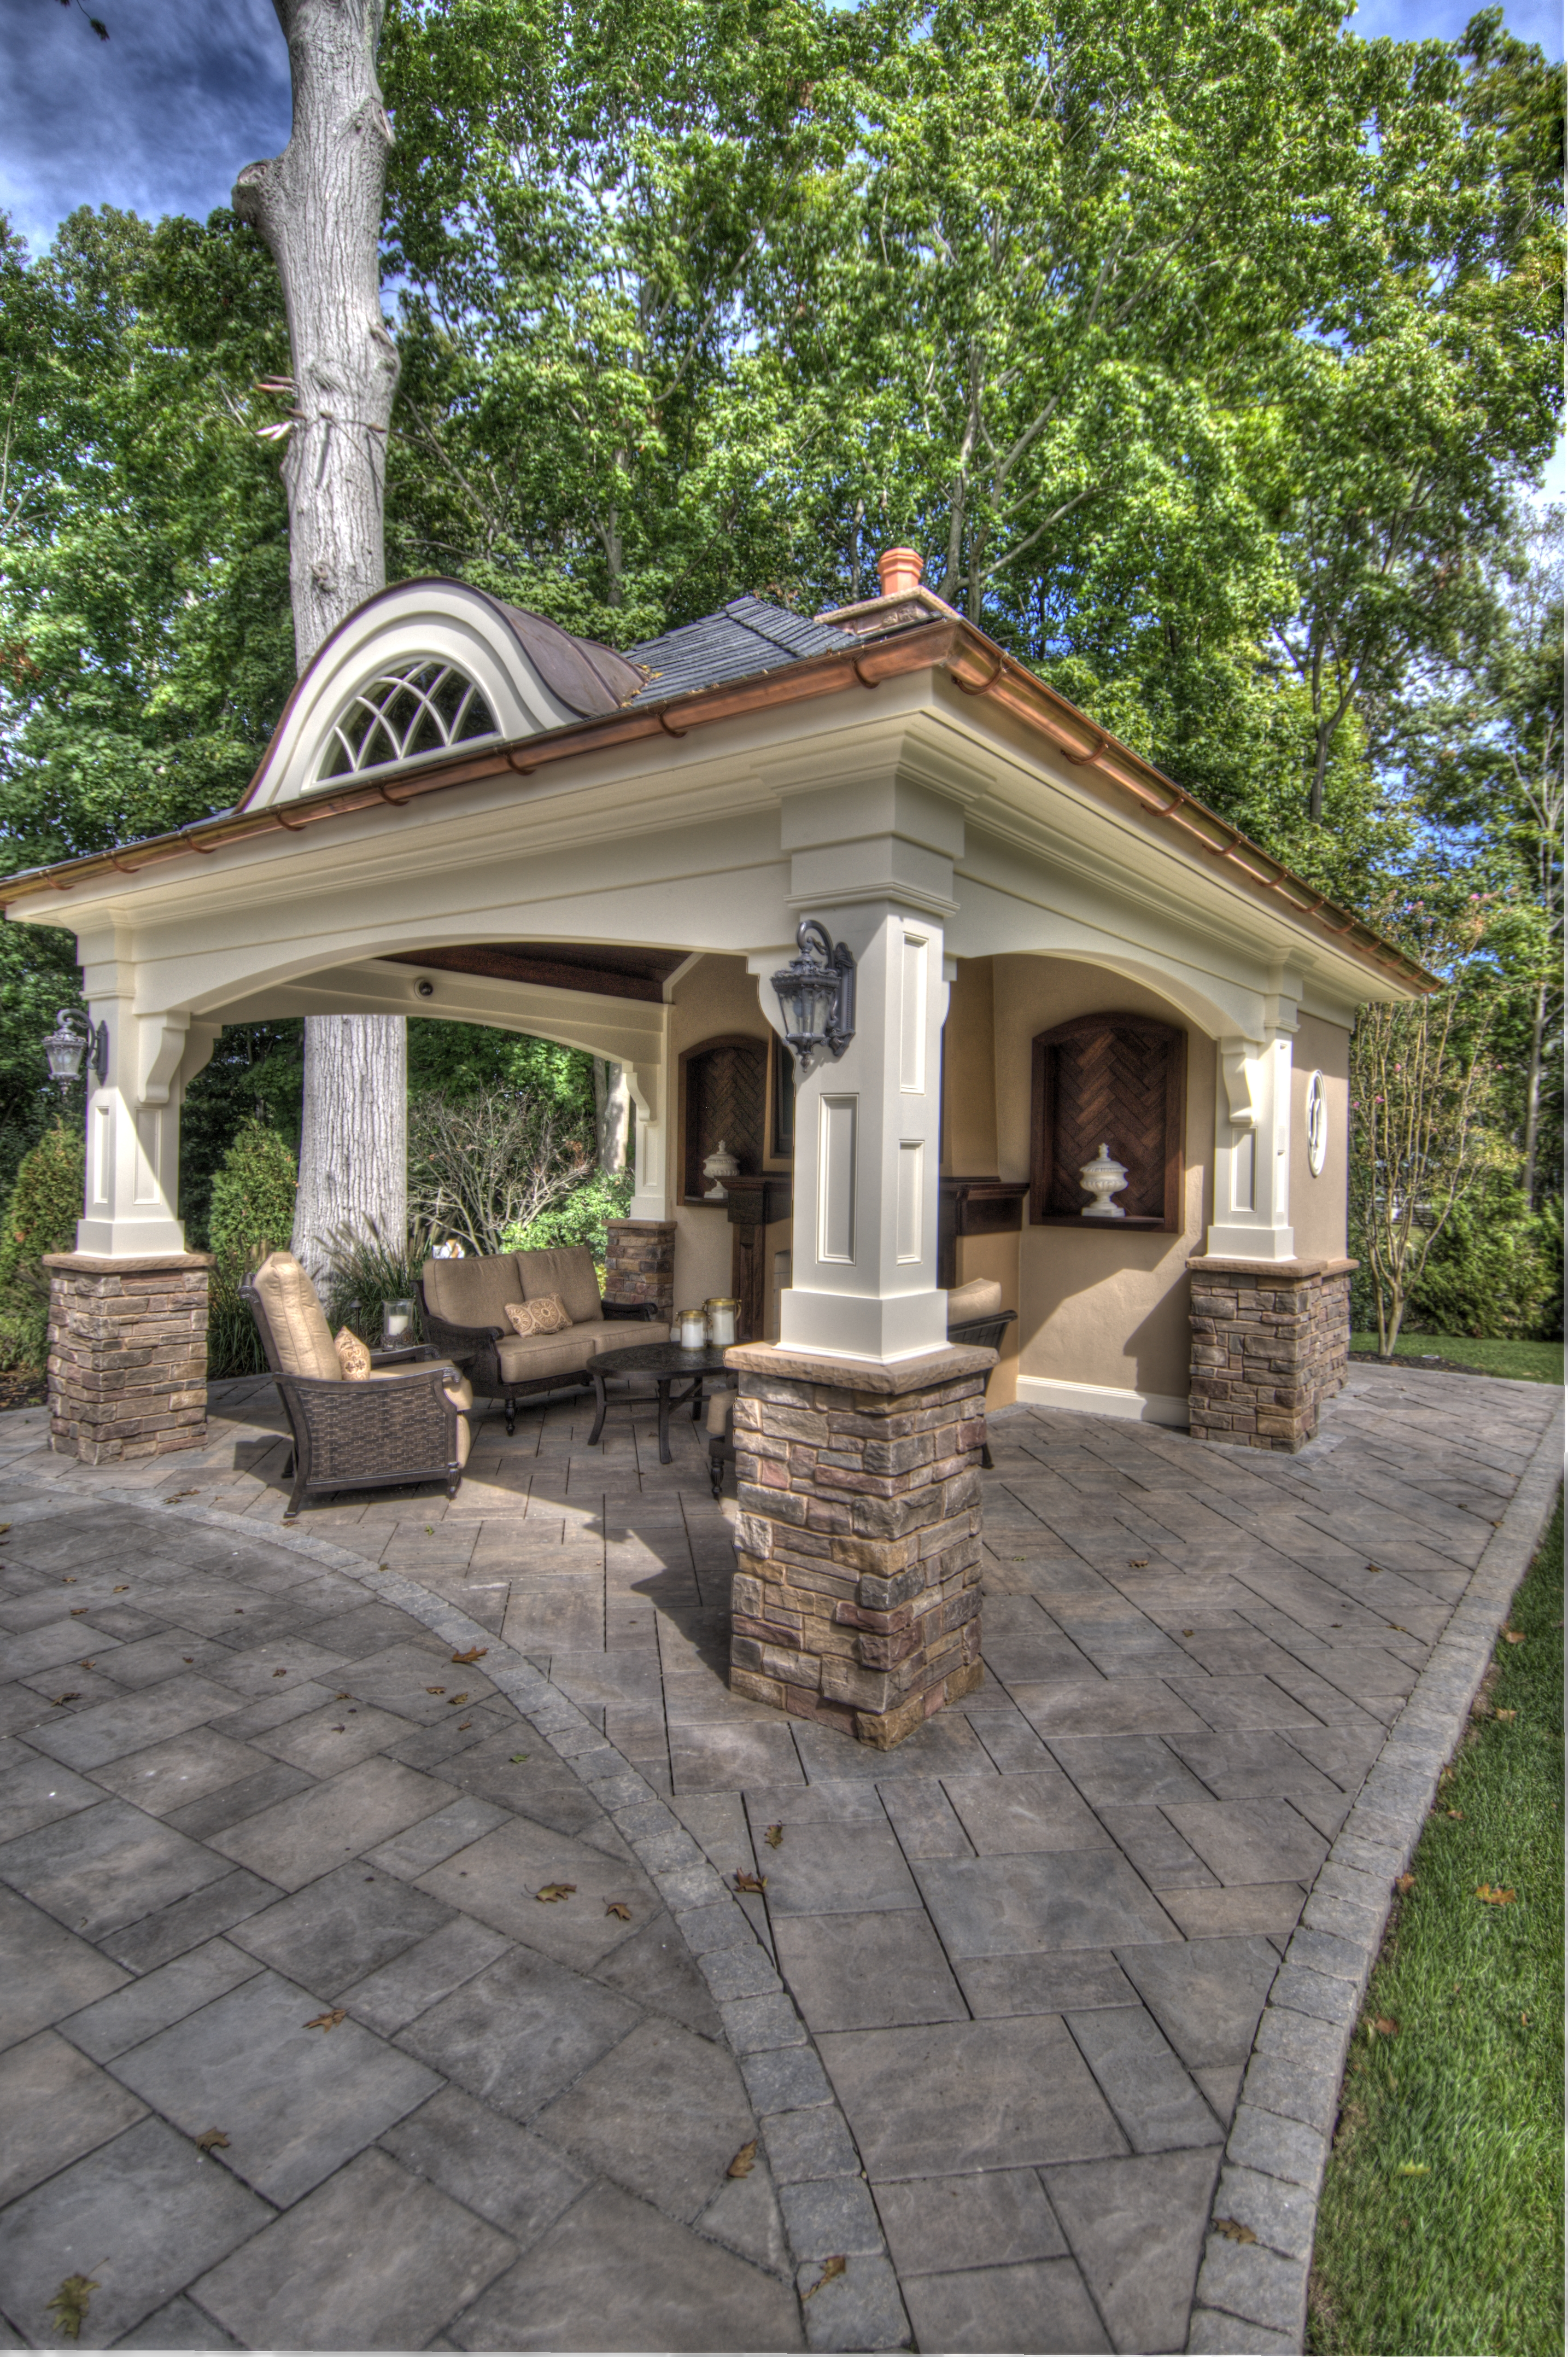 Building a shed on a hill - In The Exterior Design Of The Patio Huts Traditional Architecture Matching That Of The Main Building Is Injected With The Curves Of The Landscape With The